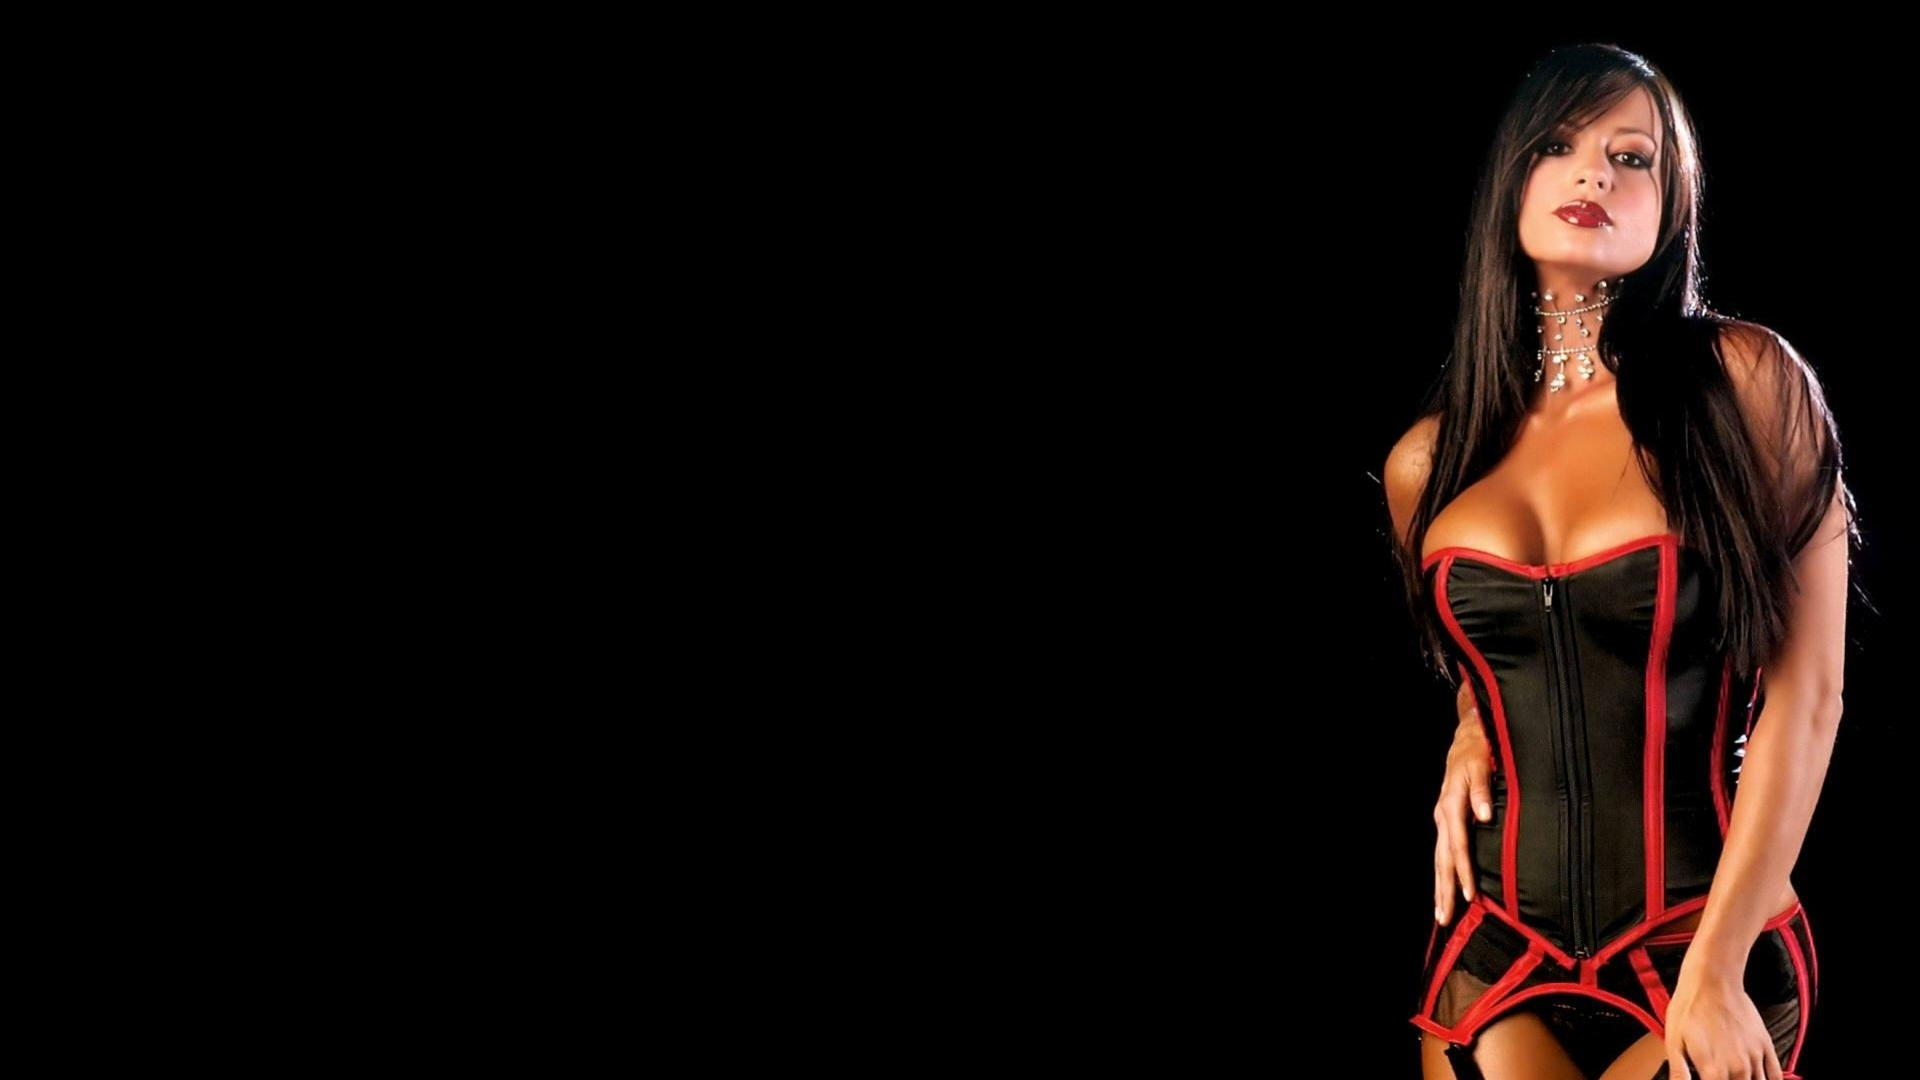 Candice Michelle j fez diversos ensaios sensuais